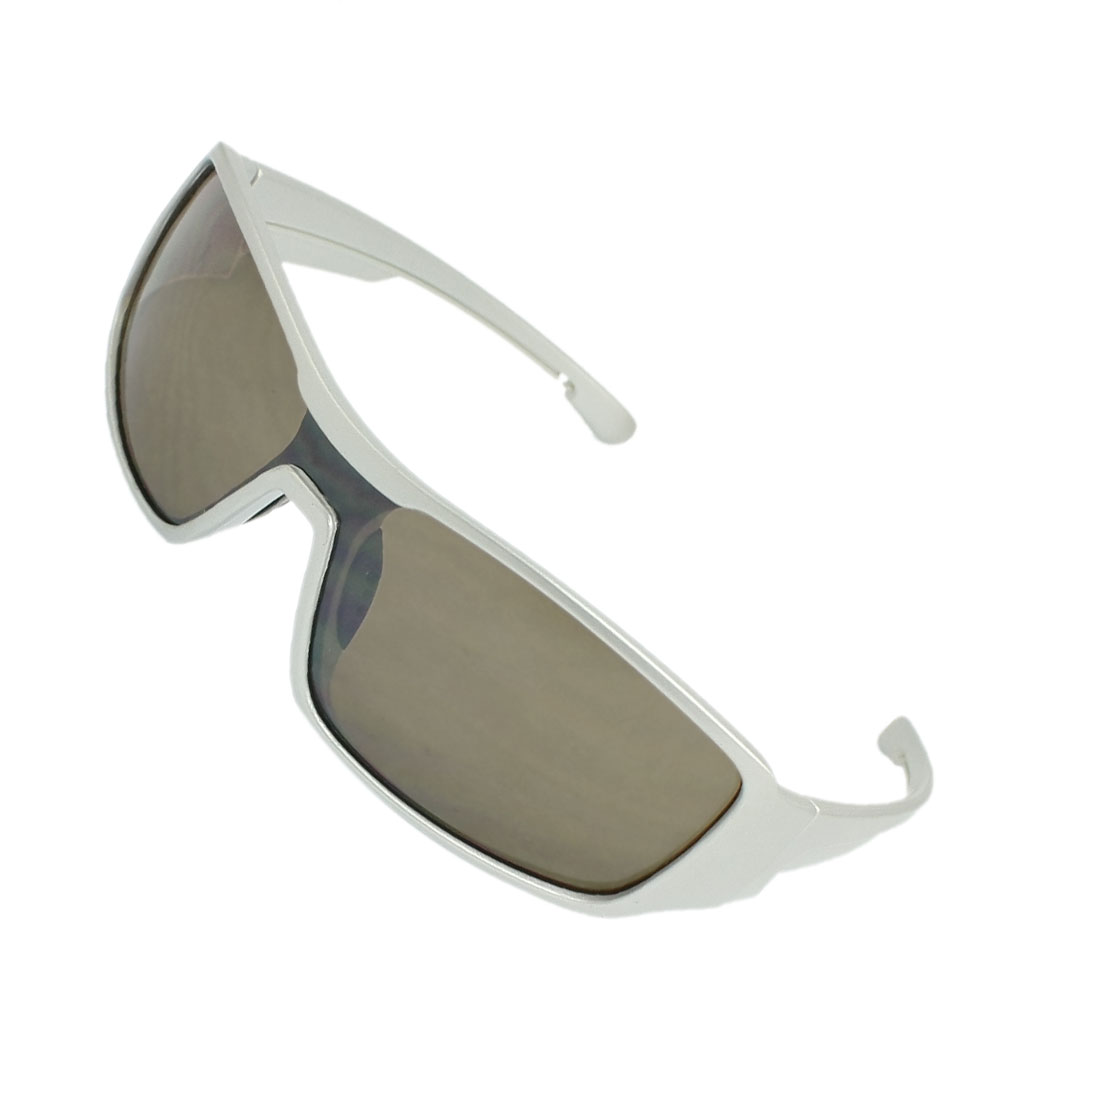 Plastic Wide Arms Rectangle Lens Sunglasses Silver Tone for Men Woman